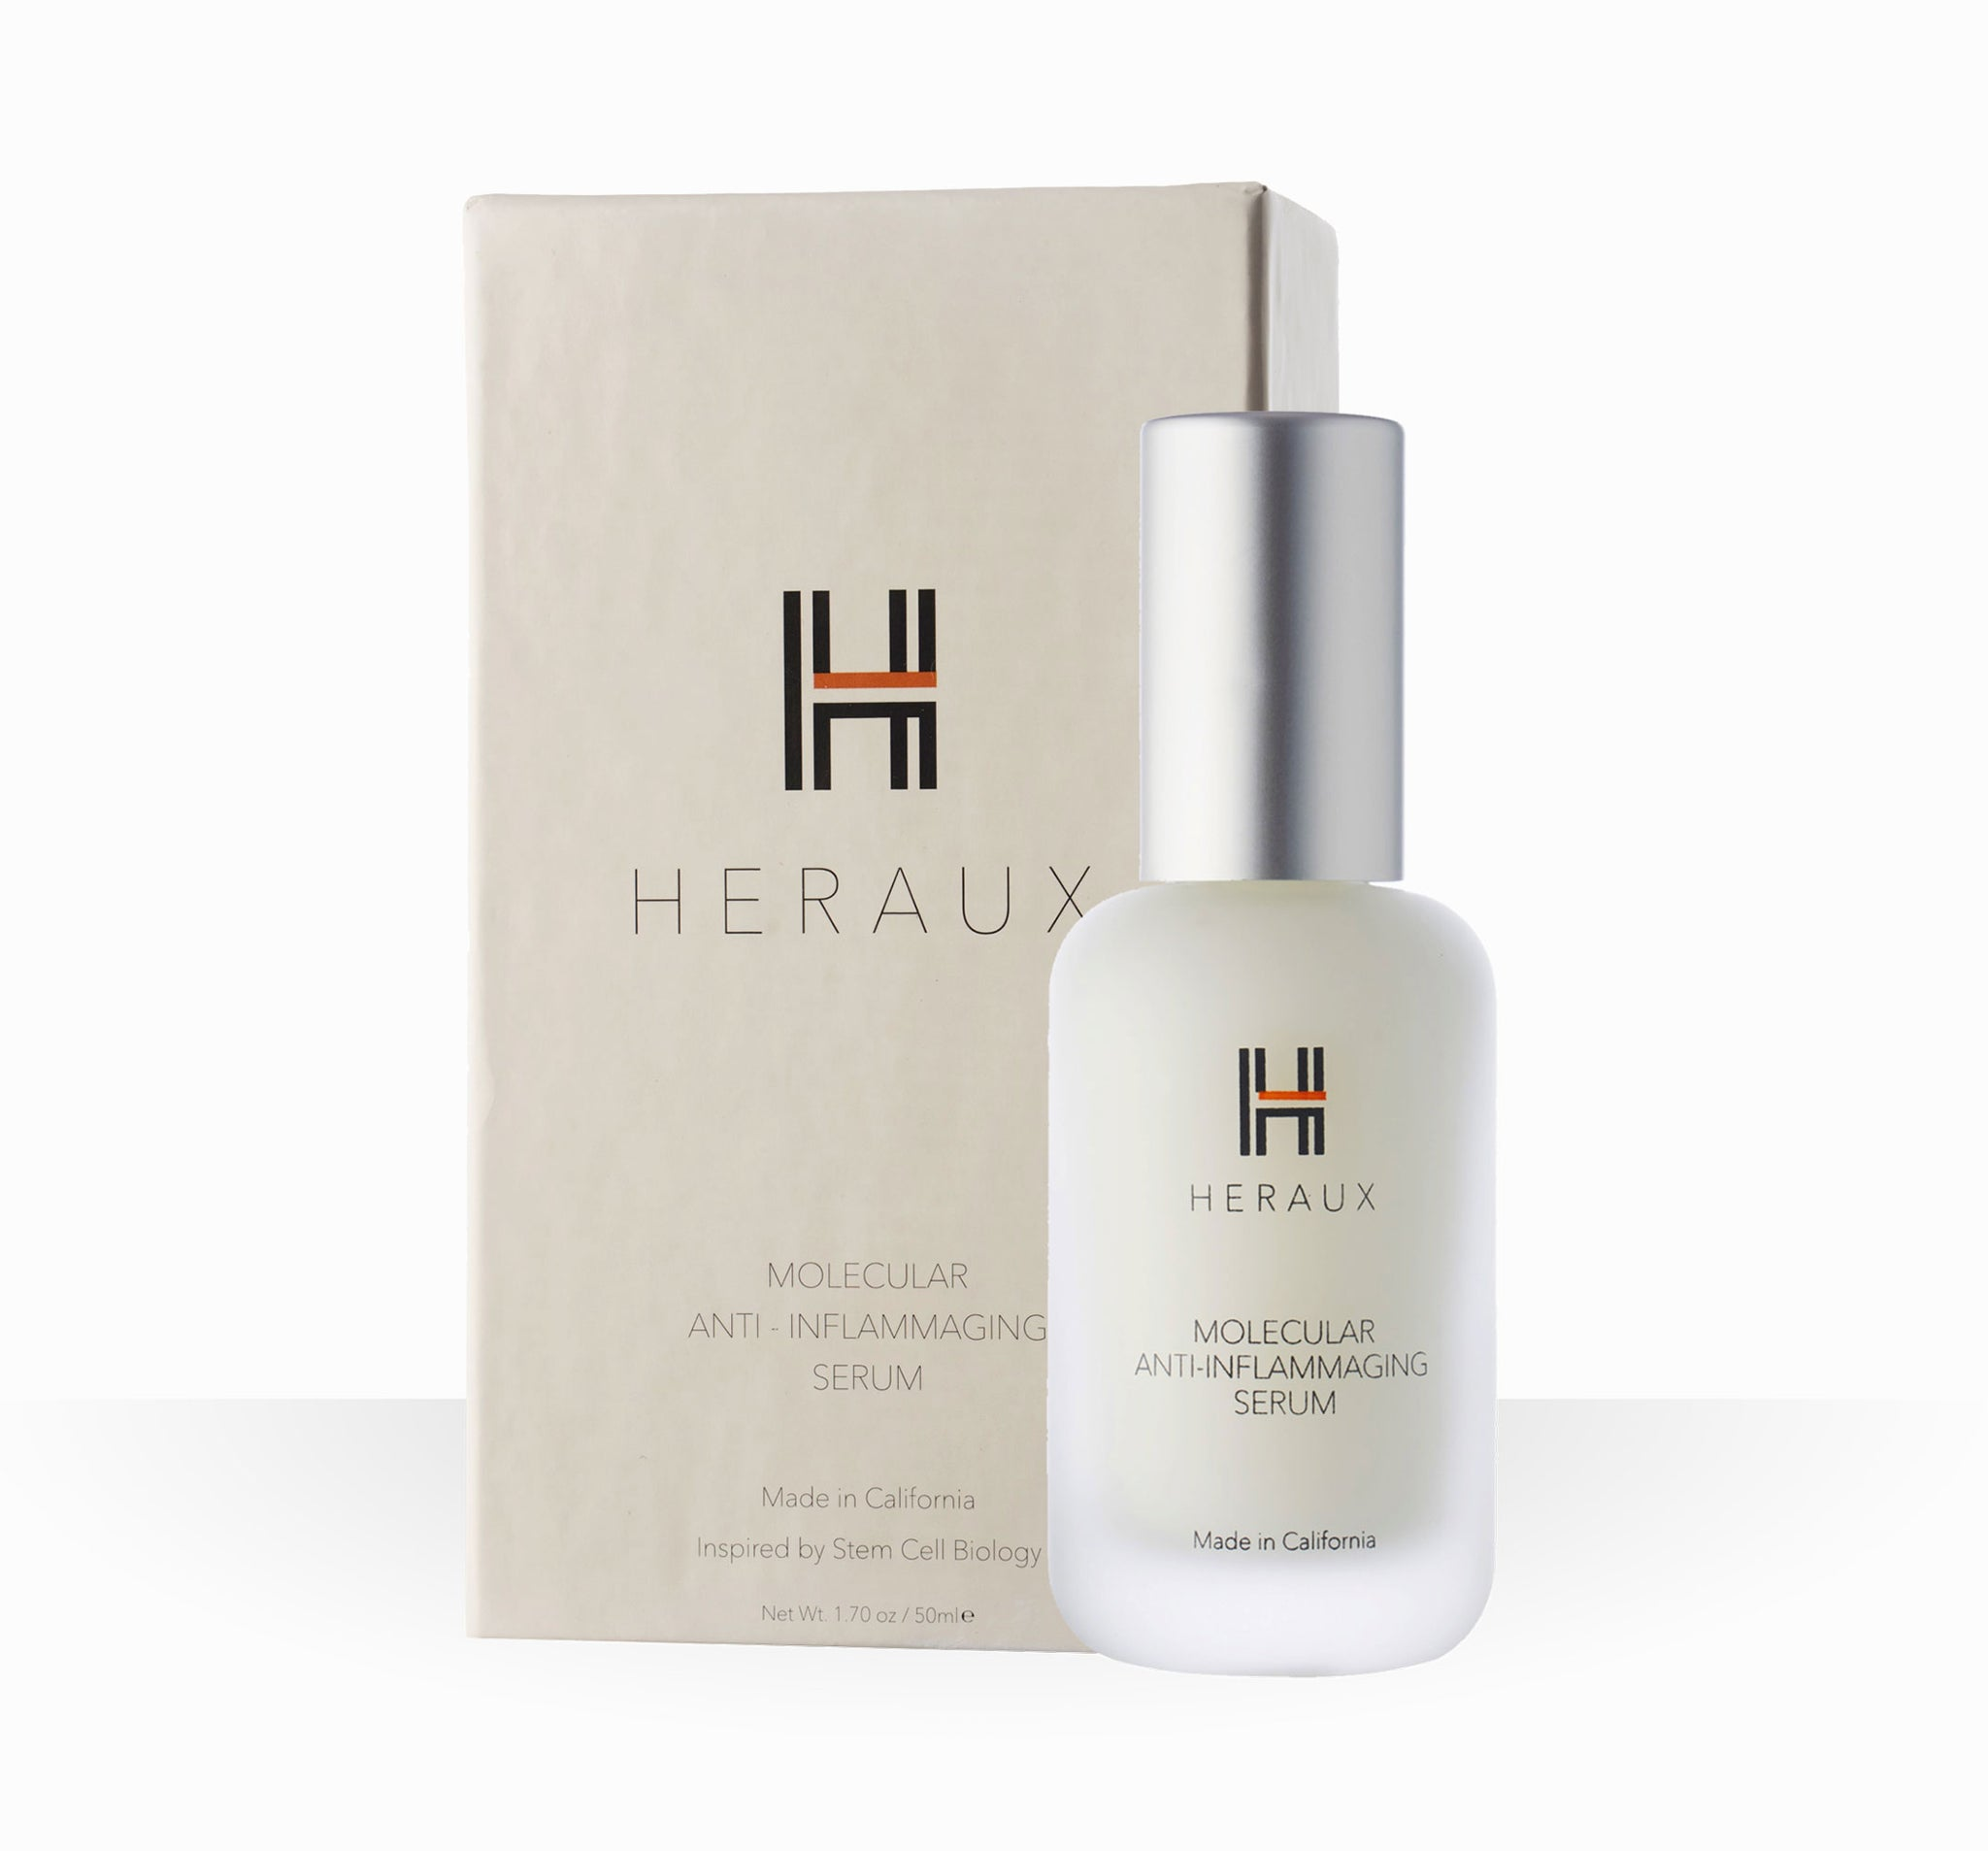 Heraux Molecular Anti-Inflammaging Serum (new packaging)